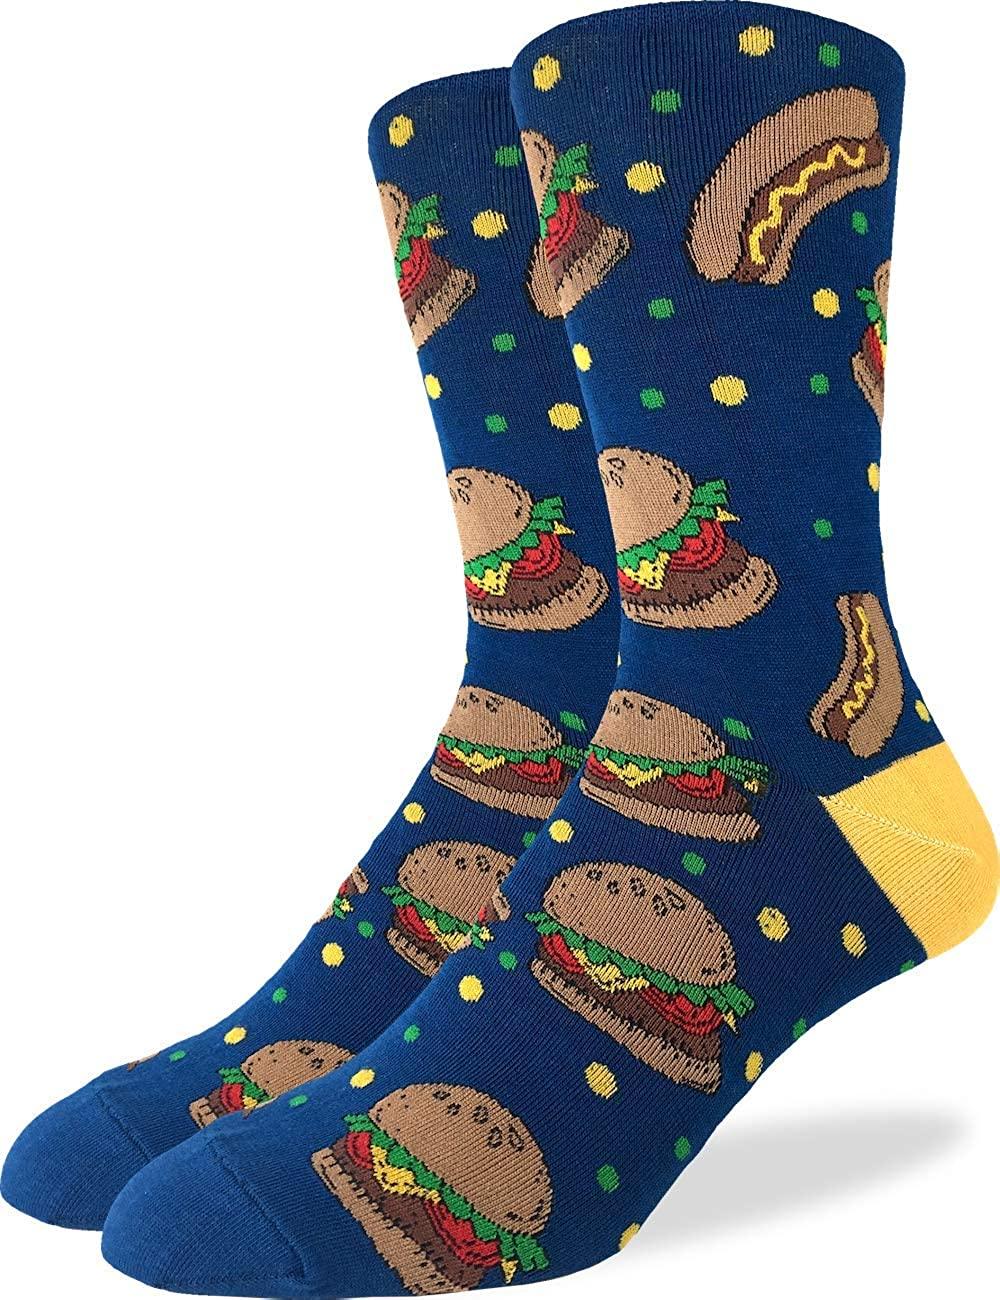 Good Luck Sock Men's Extra Large Burgers & Hotdogs Socks, Size 13-17, Big & Tall